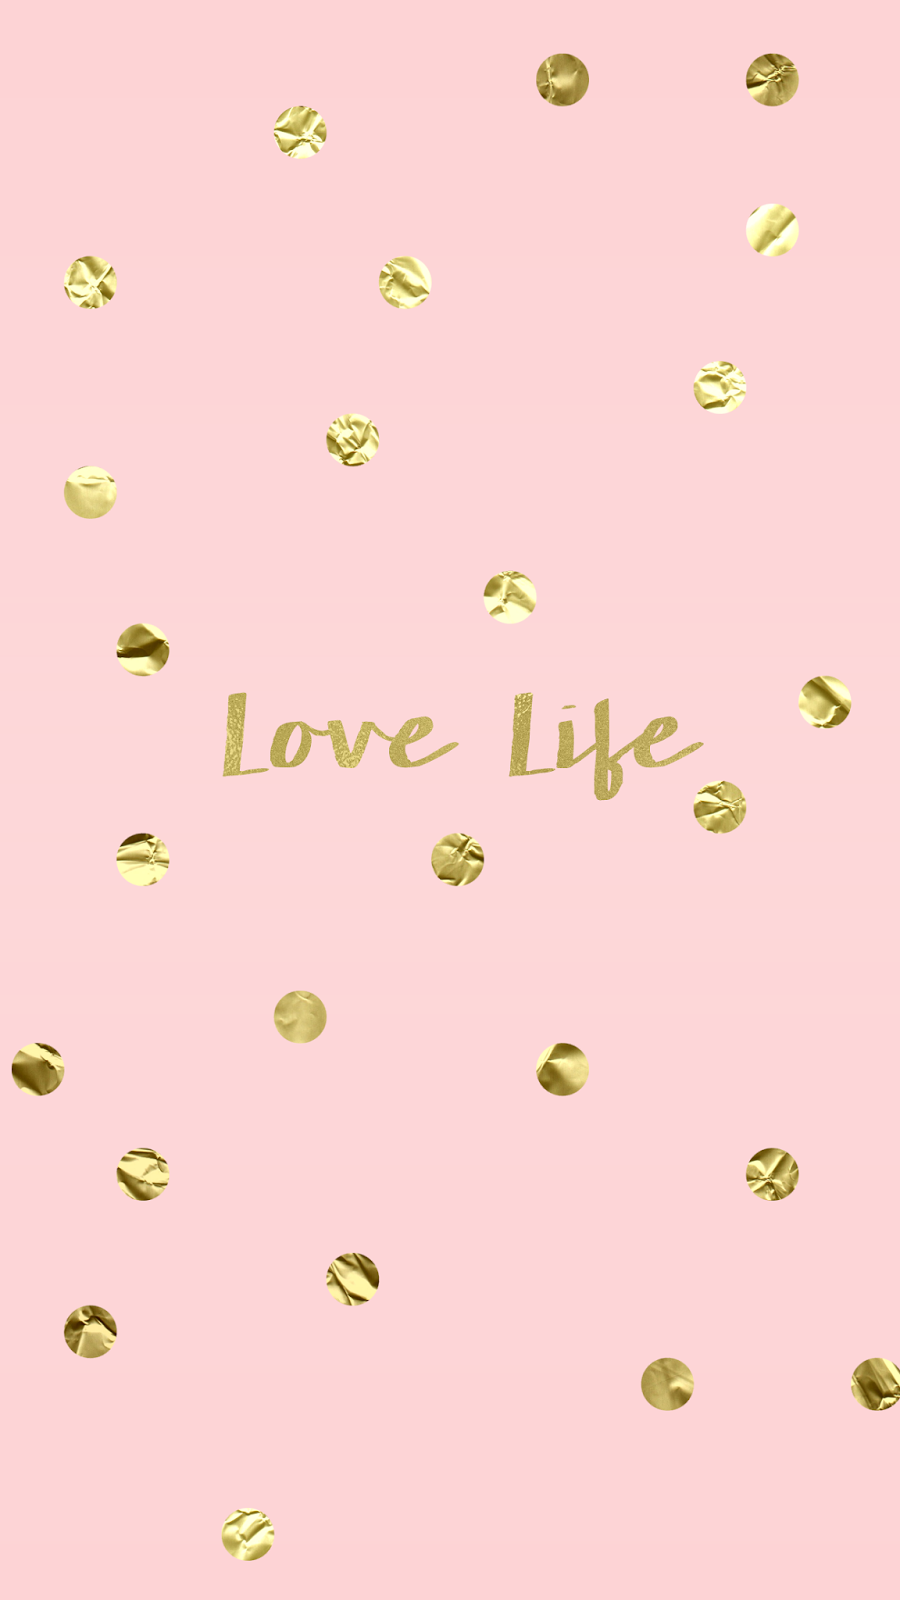 background-hd-iphone-gold-confetti-pink-love-life-wallpaper-wp30012002